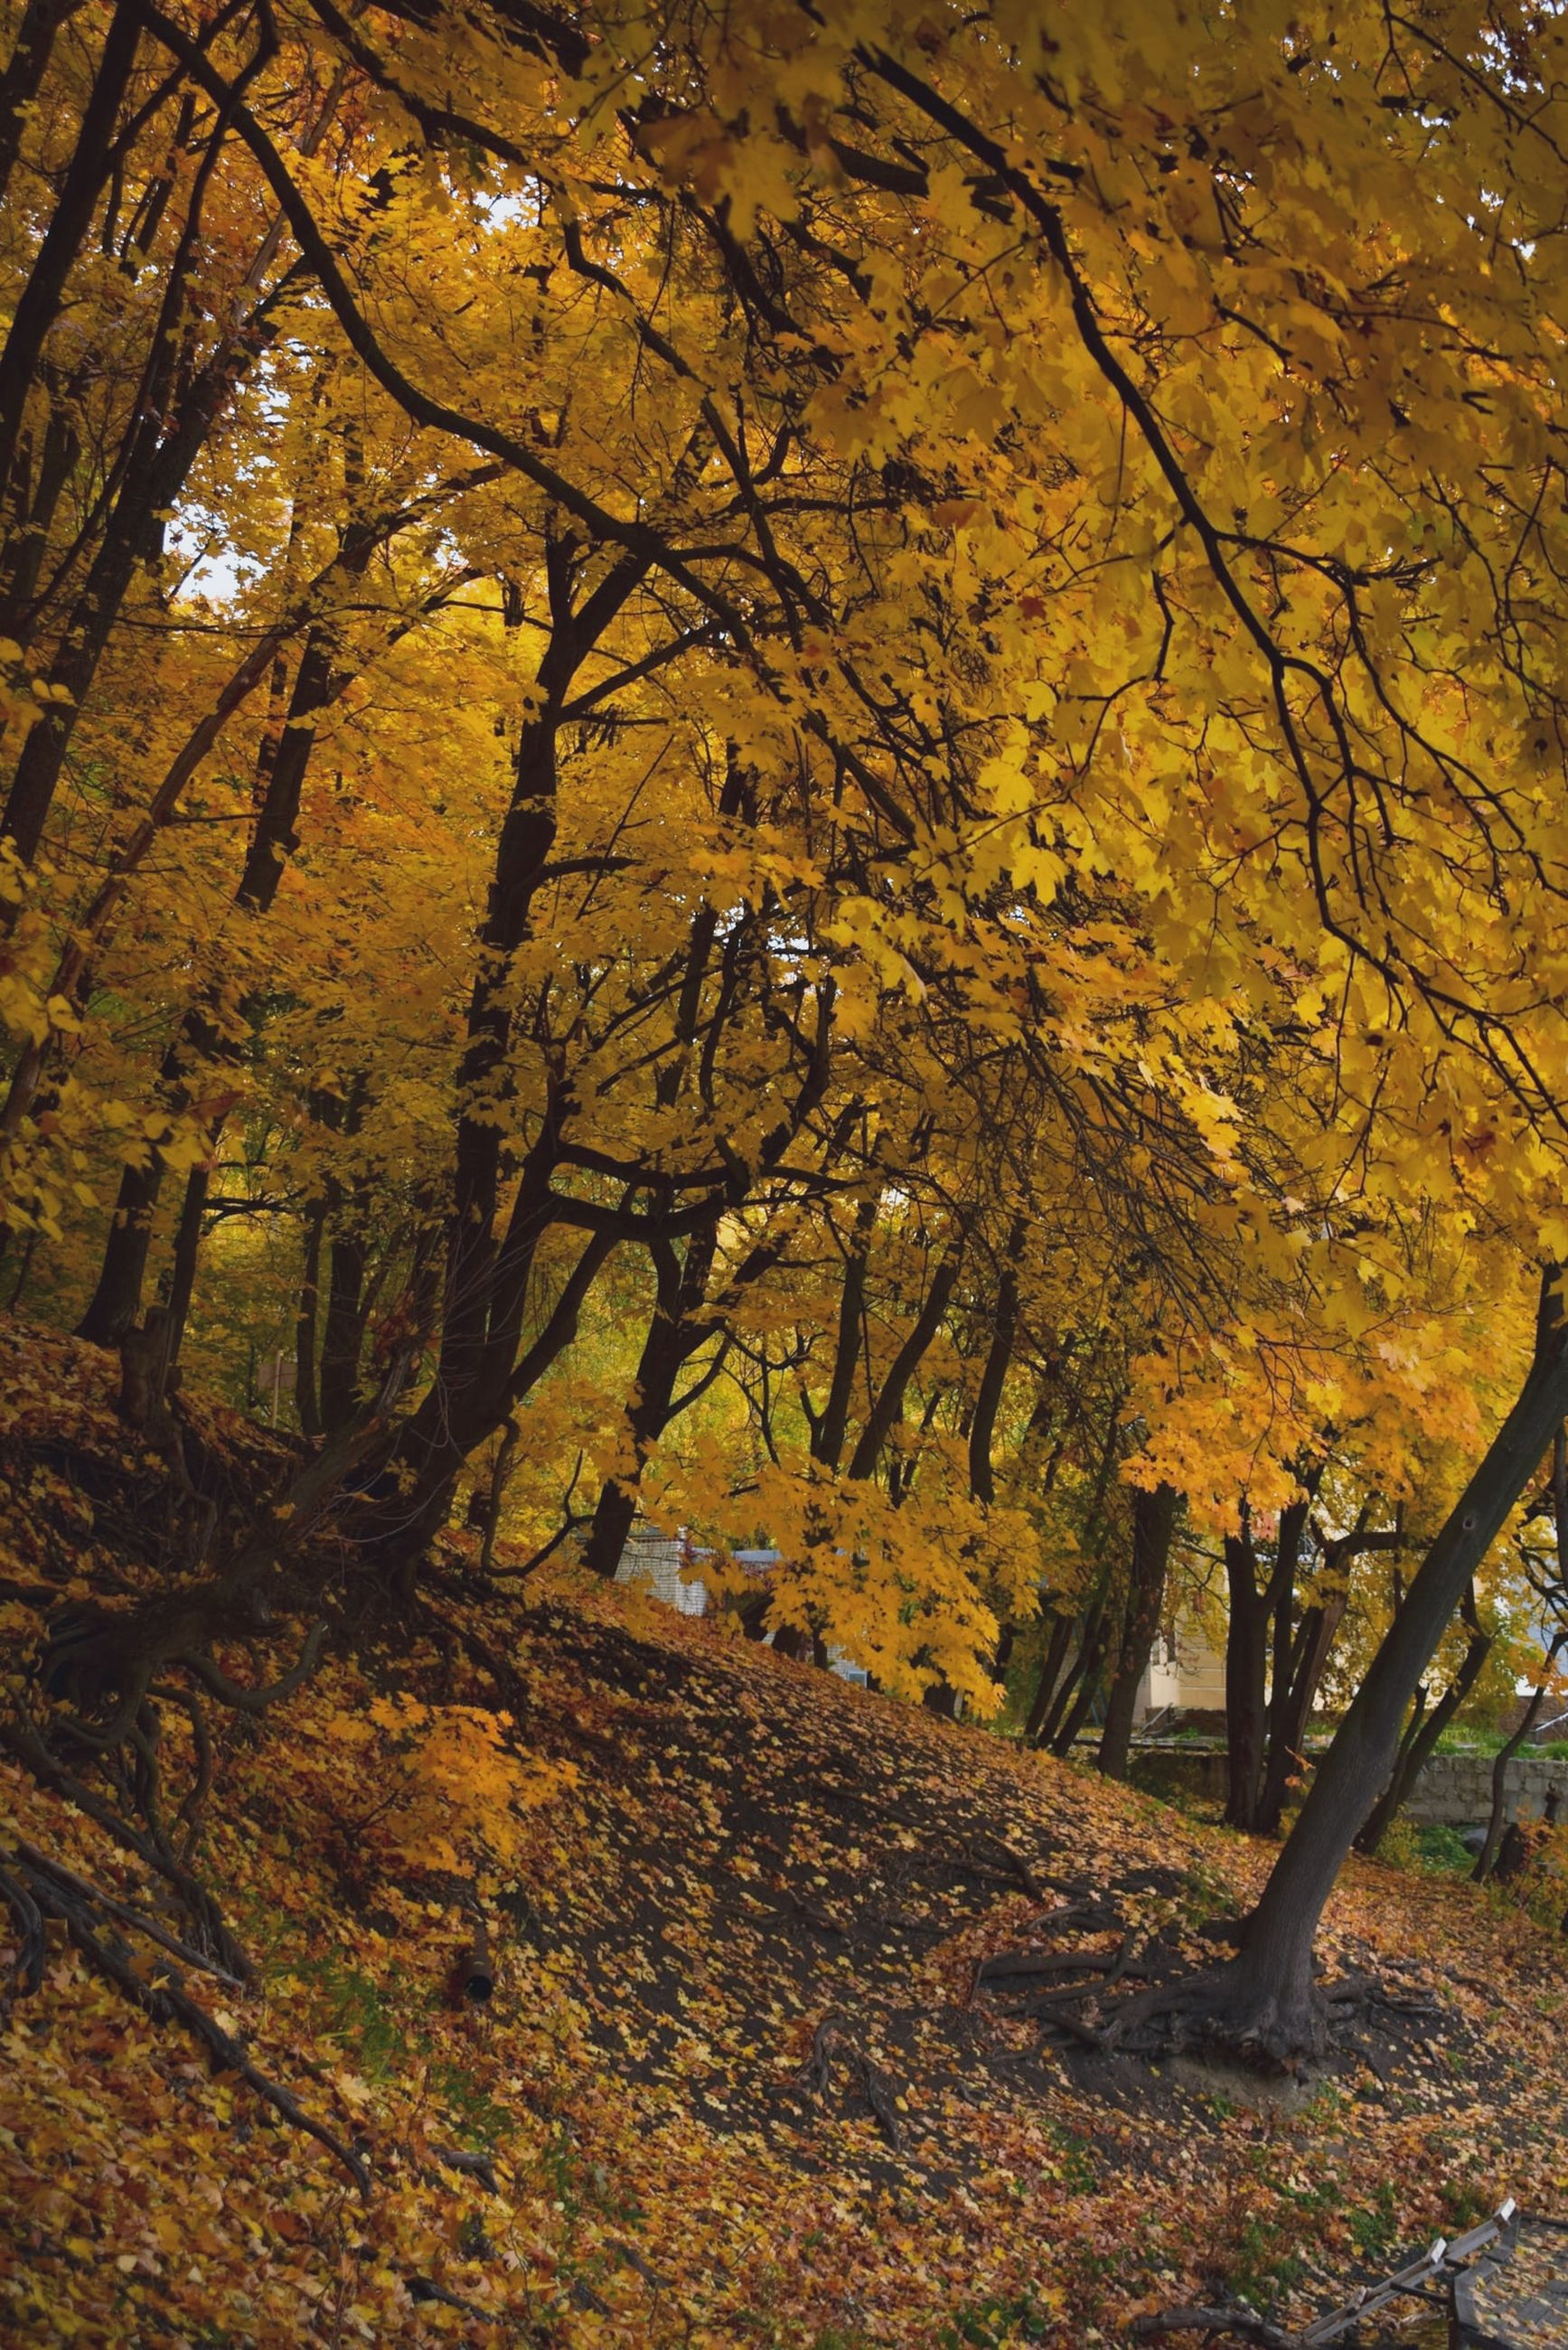 autumn, tree, change, plant, leaf, plant part, nature, land, beauty in nature, orange color, forest, tree trunk, branch, trunk, yellow, growth, day, no people, tranquility, scenics - nature, outdoors, autumn collection, woodland, fall, leaves, natural condition